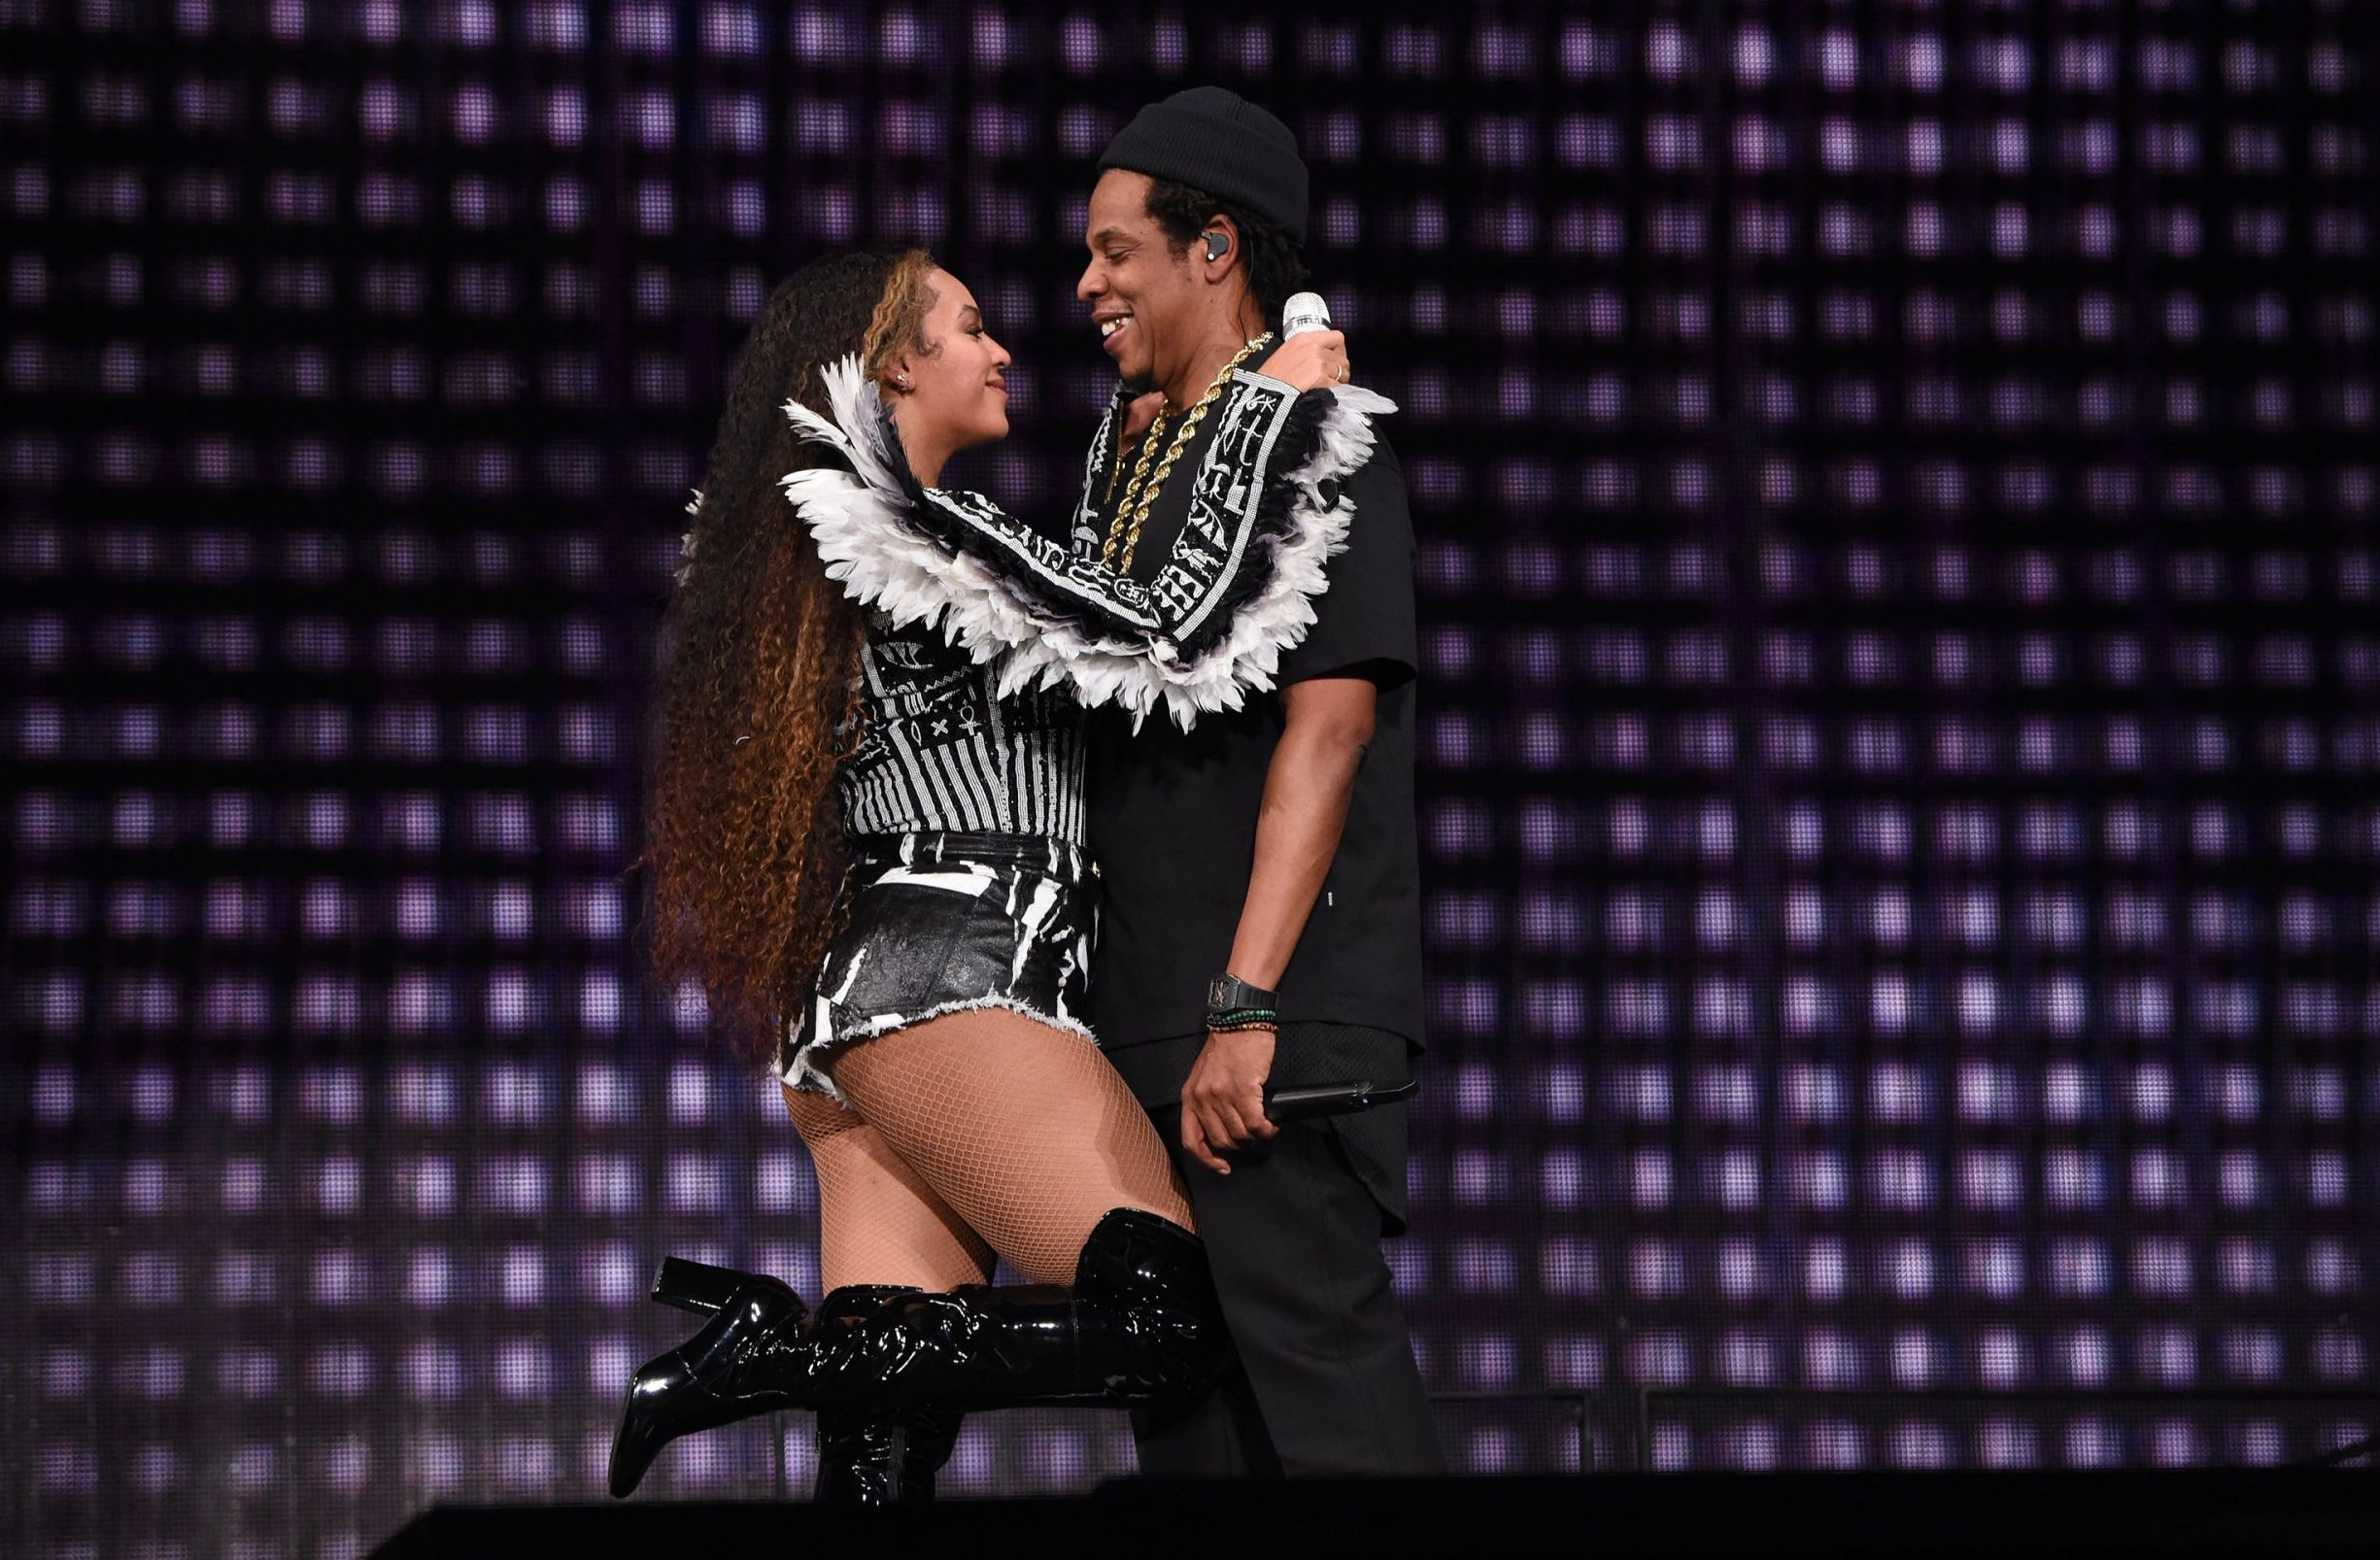 Beyonce serenades Jay Z with sweet singalong at his 49th birthday party in South Africa